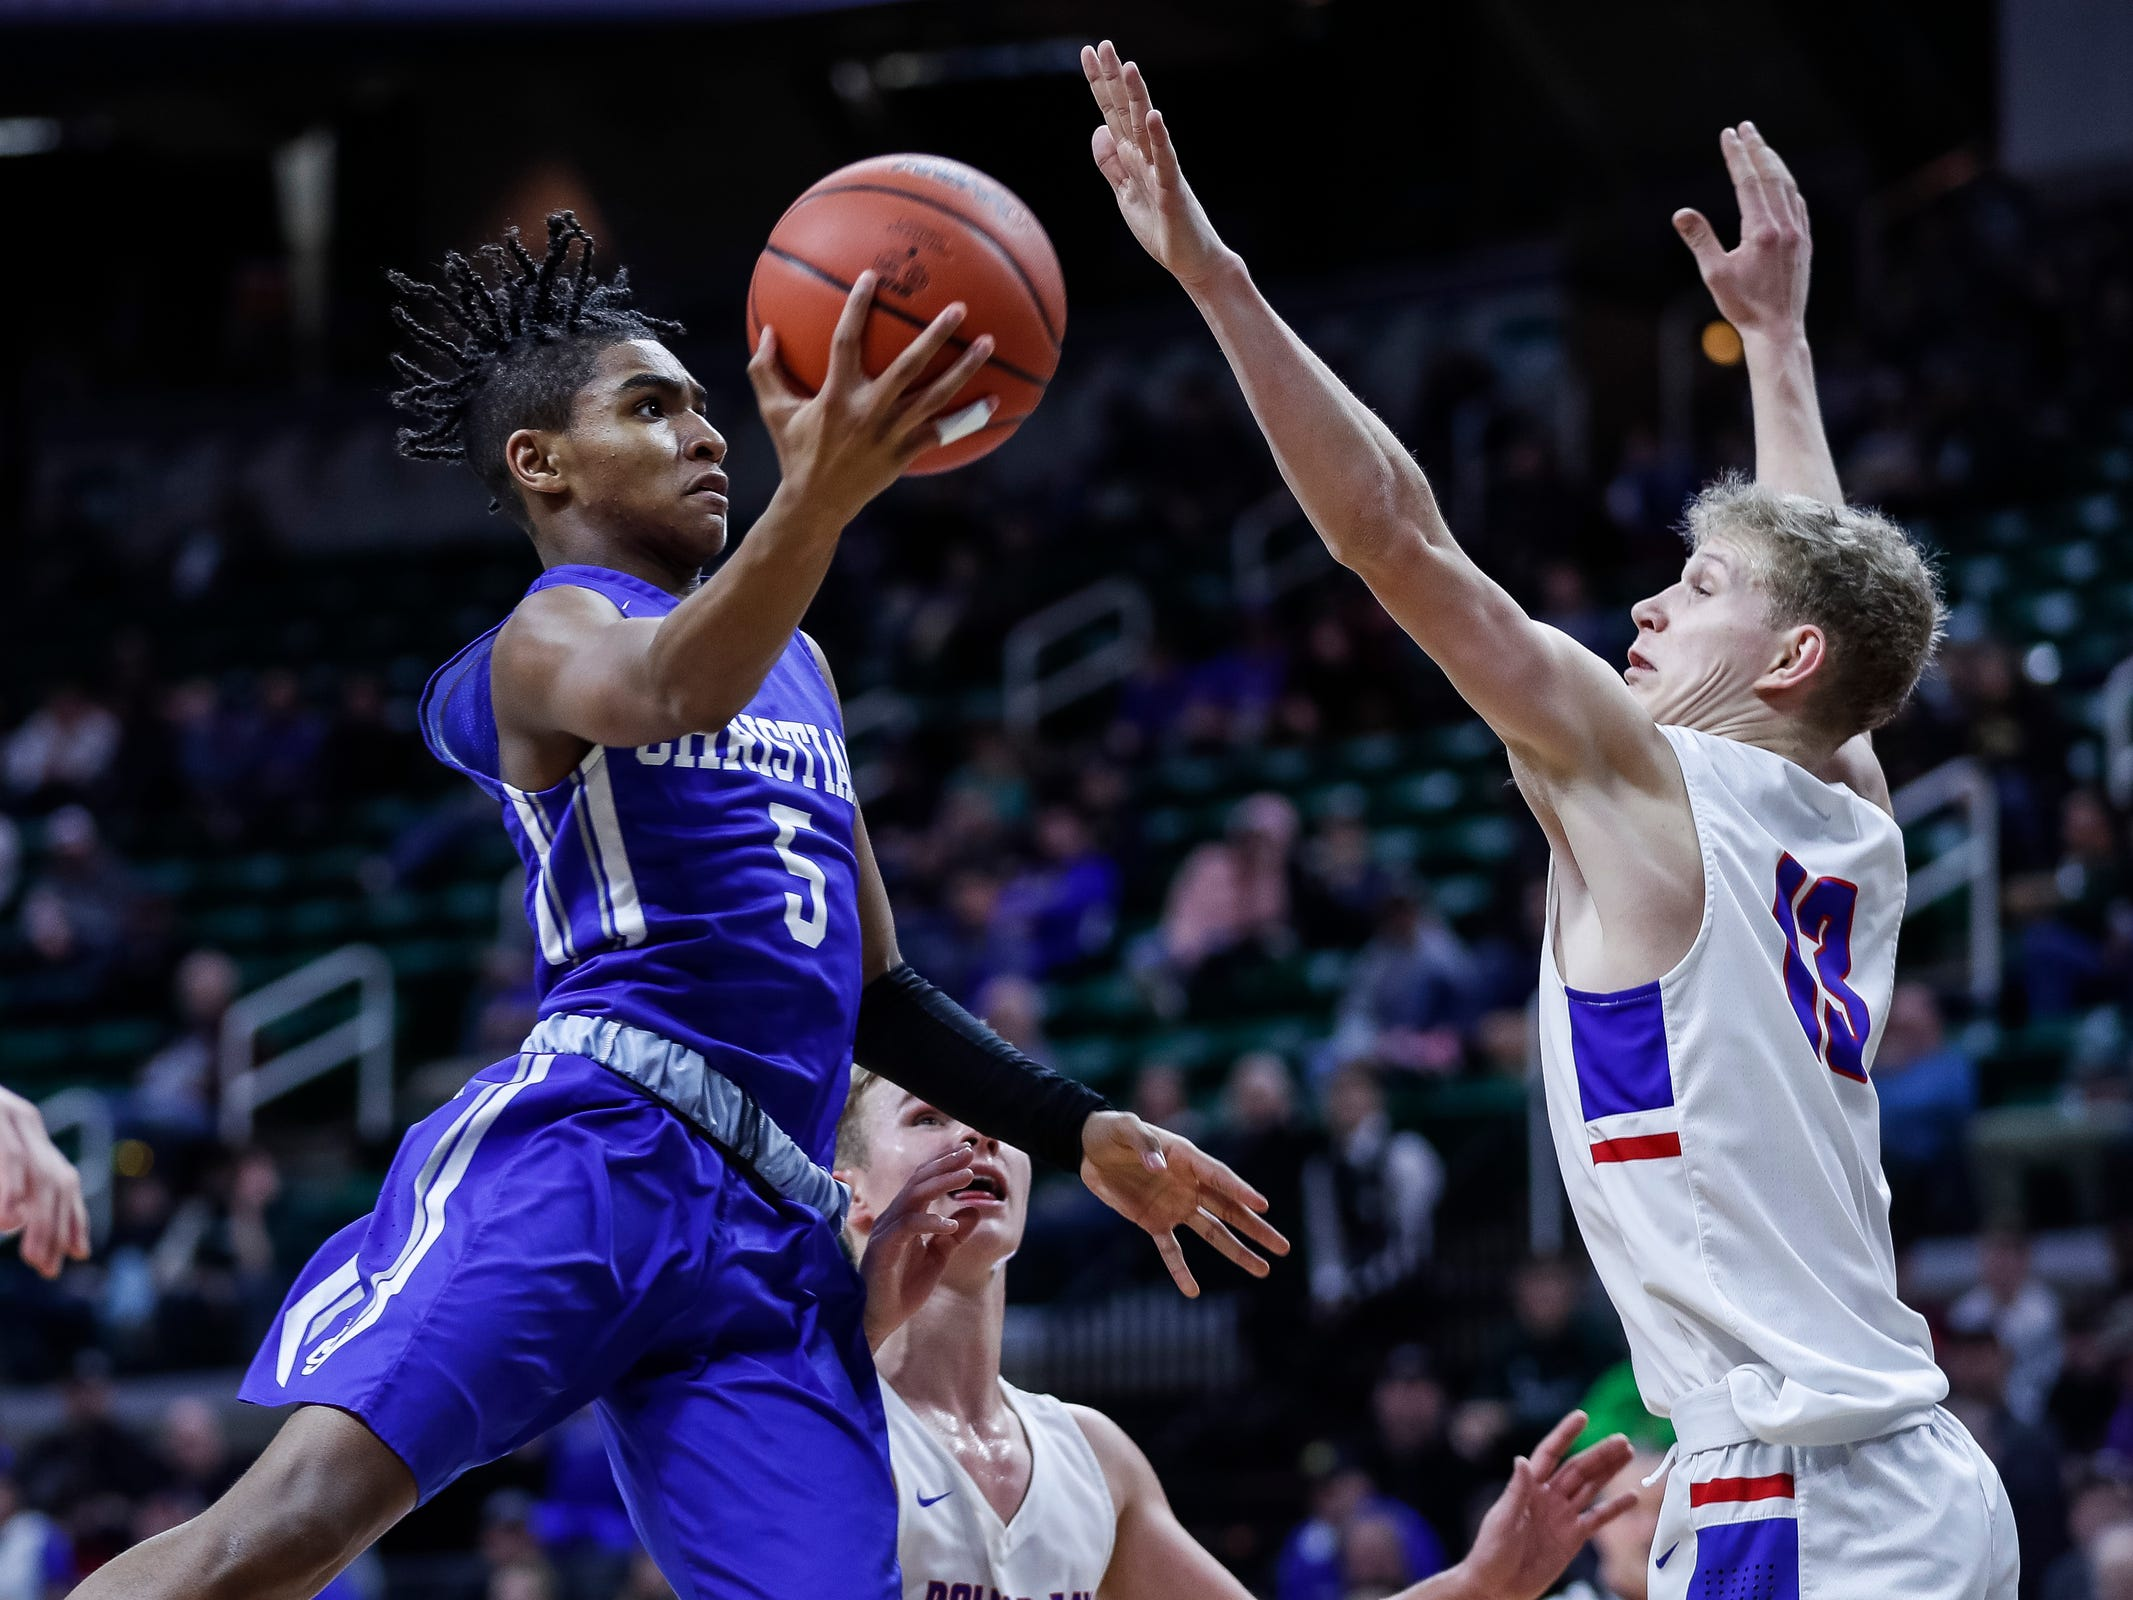 Southfield Christian's Verian Patrick (5) makes a layup against Dollar Bay's Connor LeClaire (13)during the second half of MHSAA Division 4 semifinal at the Breslin Center in East Lansing, Thursday, March 14, 2019.